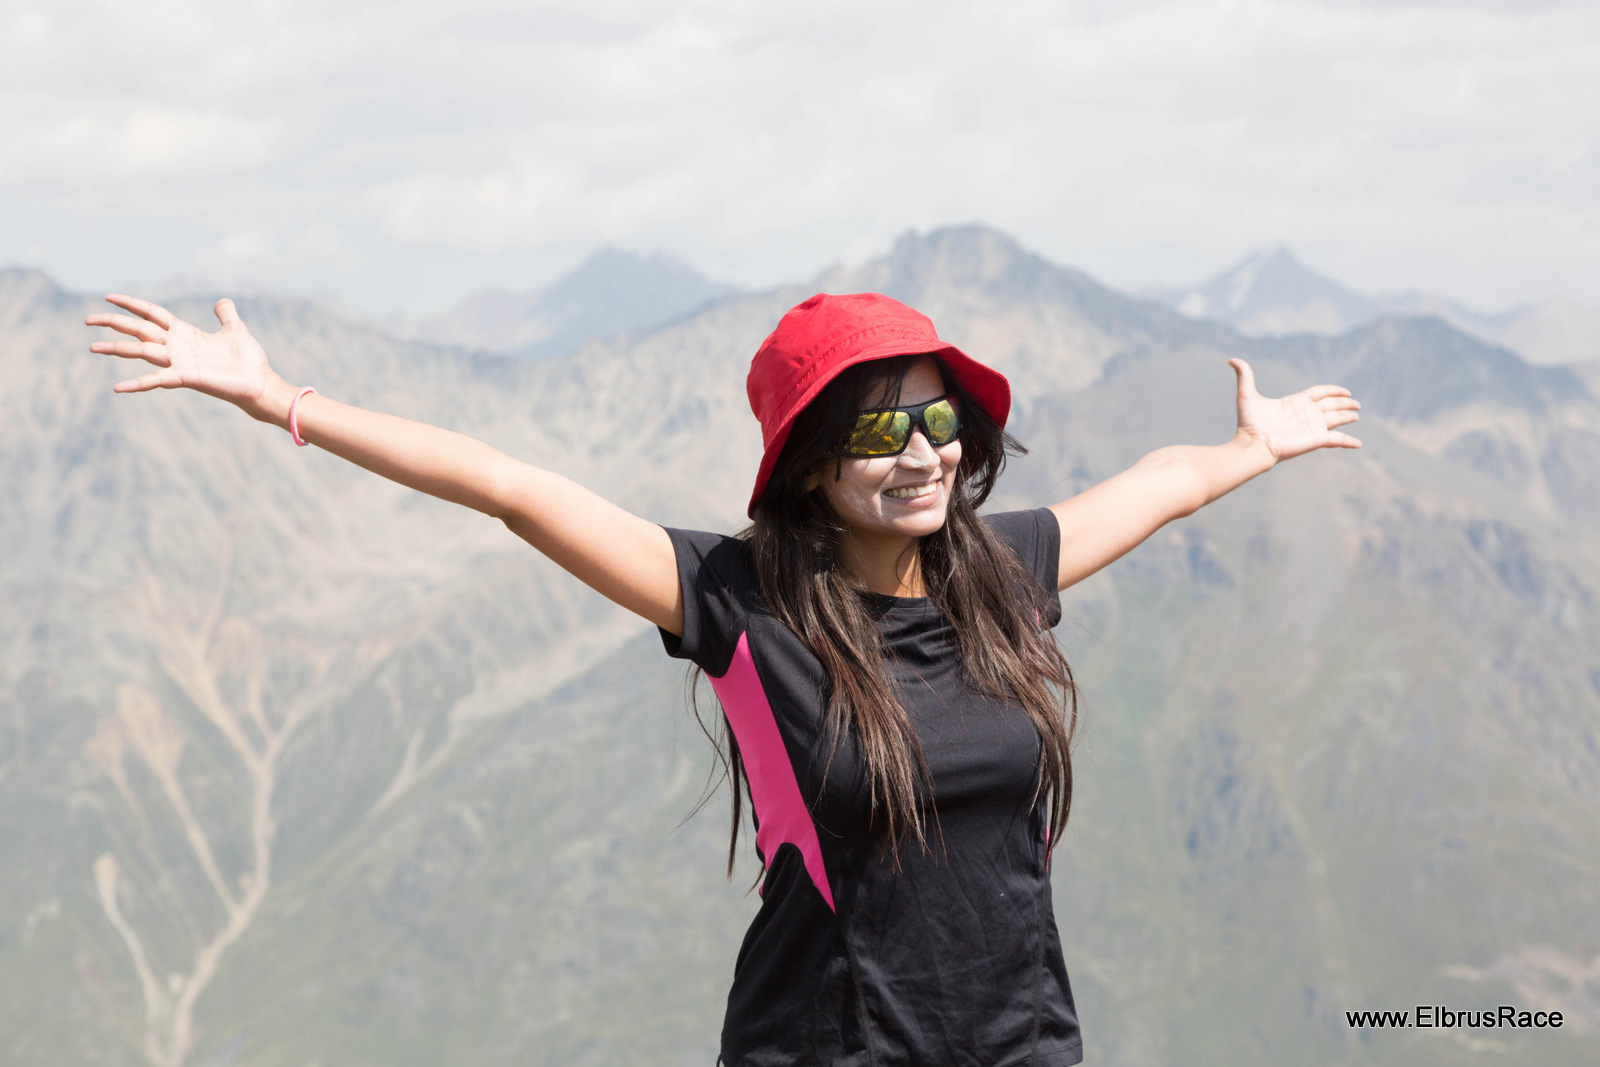 Ritika Singh - Elbrus race 2014 participant, who managed to come to short list 100 of Mars One project